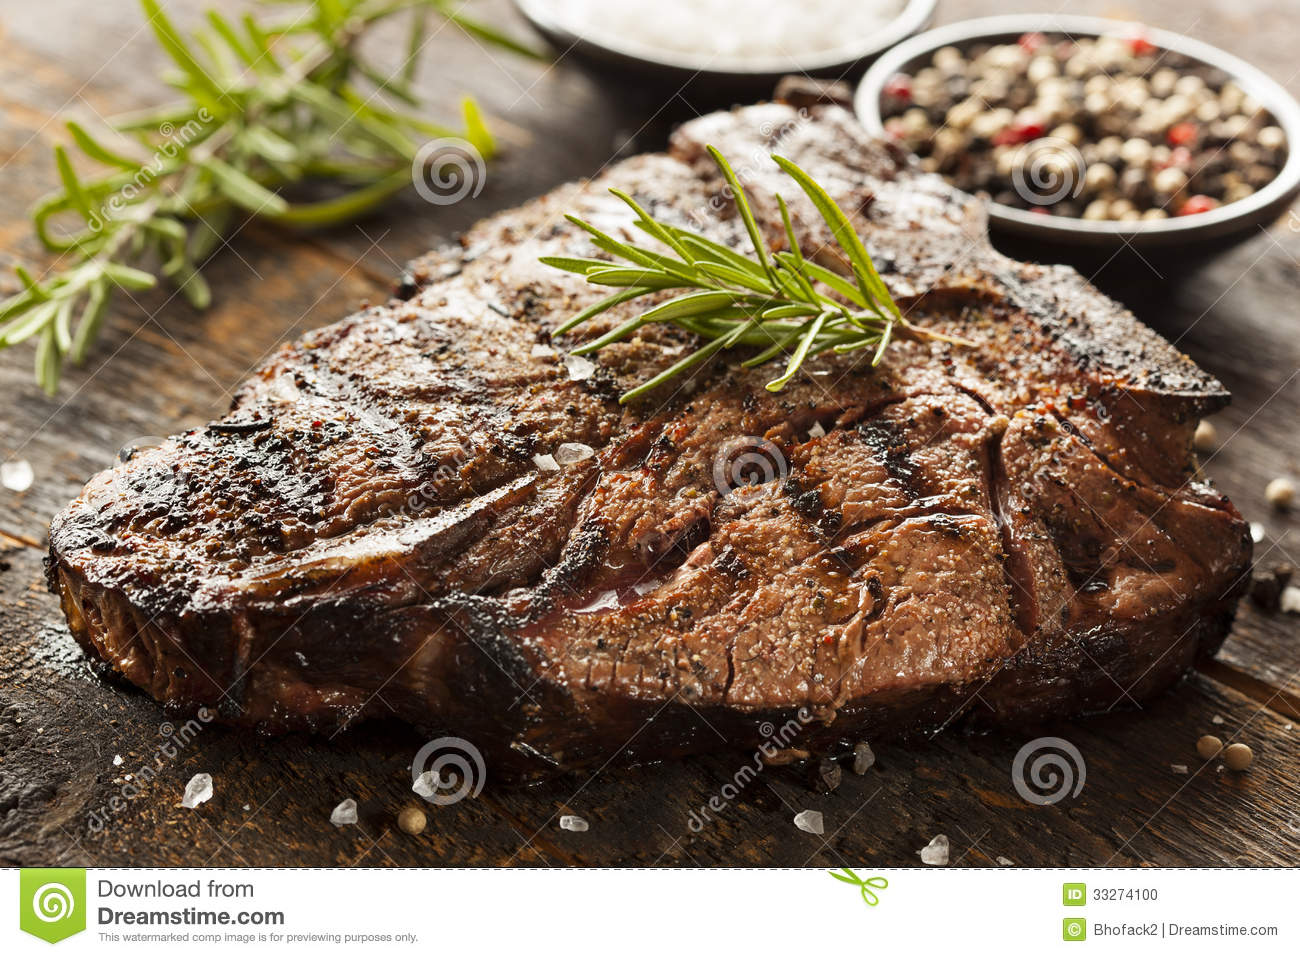 Gegrilltes BBQ-T-Bone-Steak